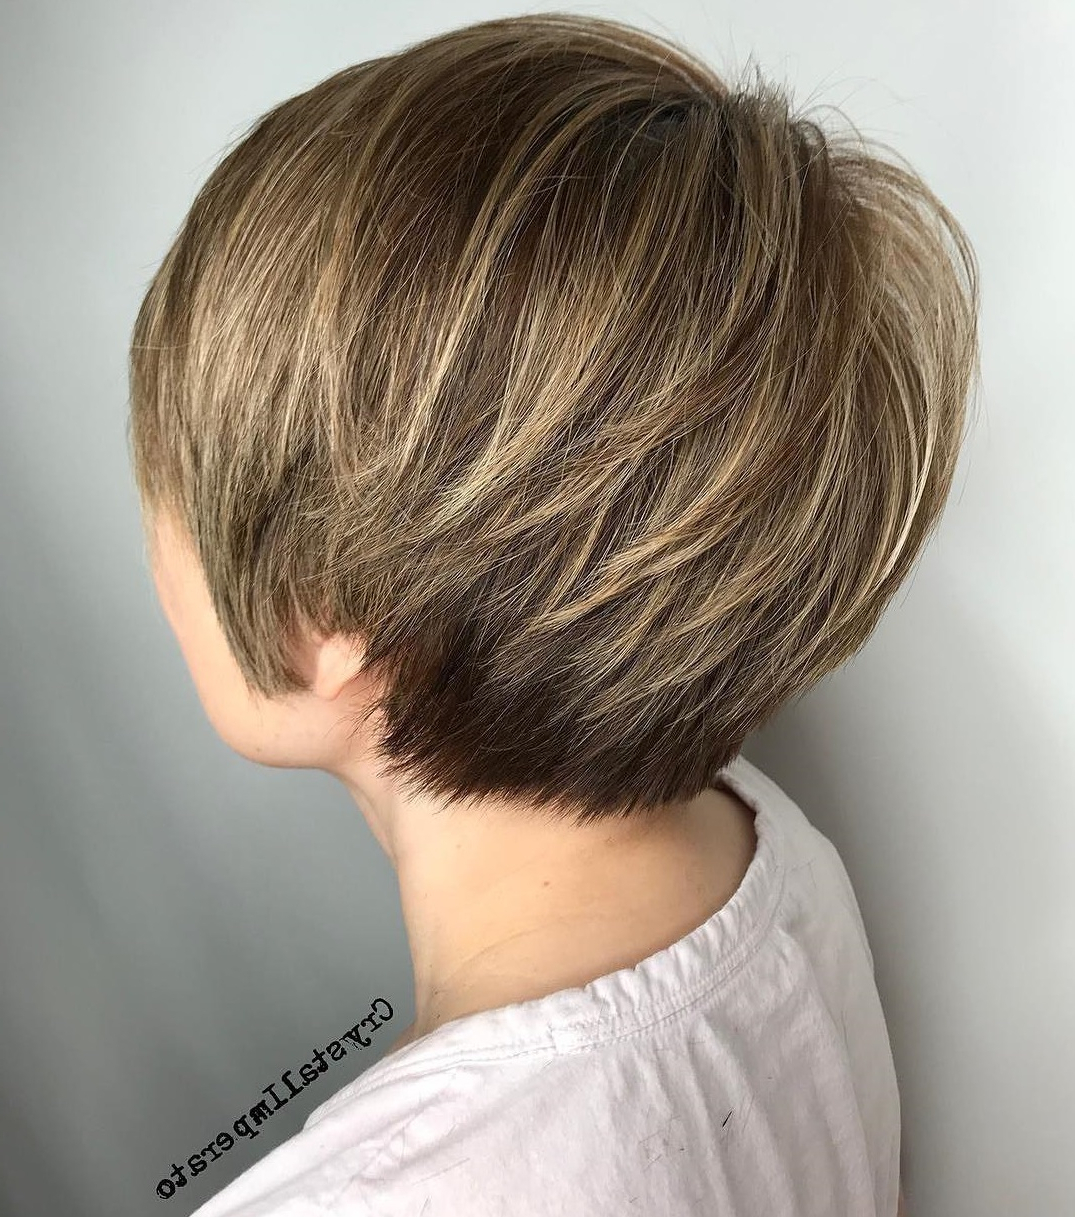 50 Hottest Pixie Cut Hairstyles In 2019 Within Highlighted Pixie Hairstyles (View 10 of 20)